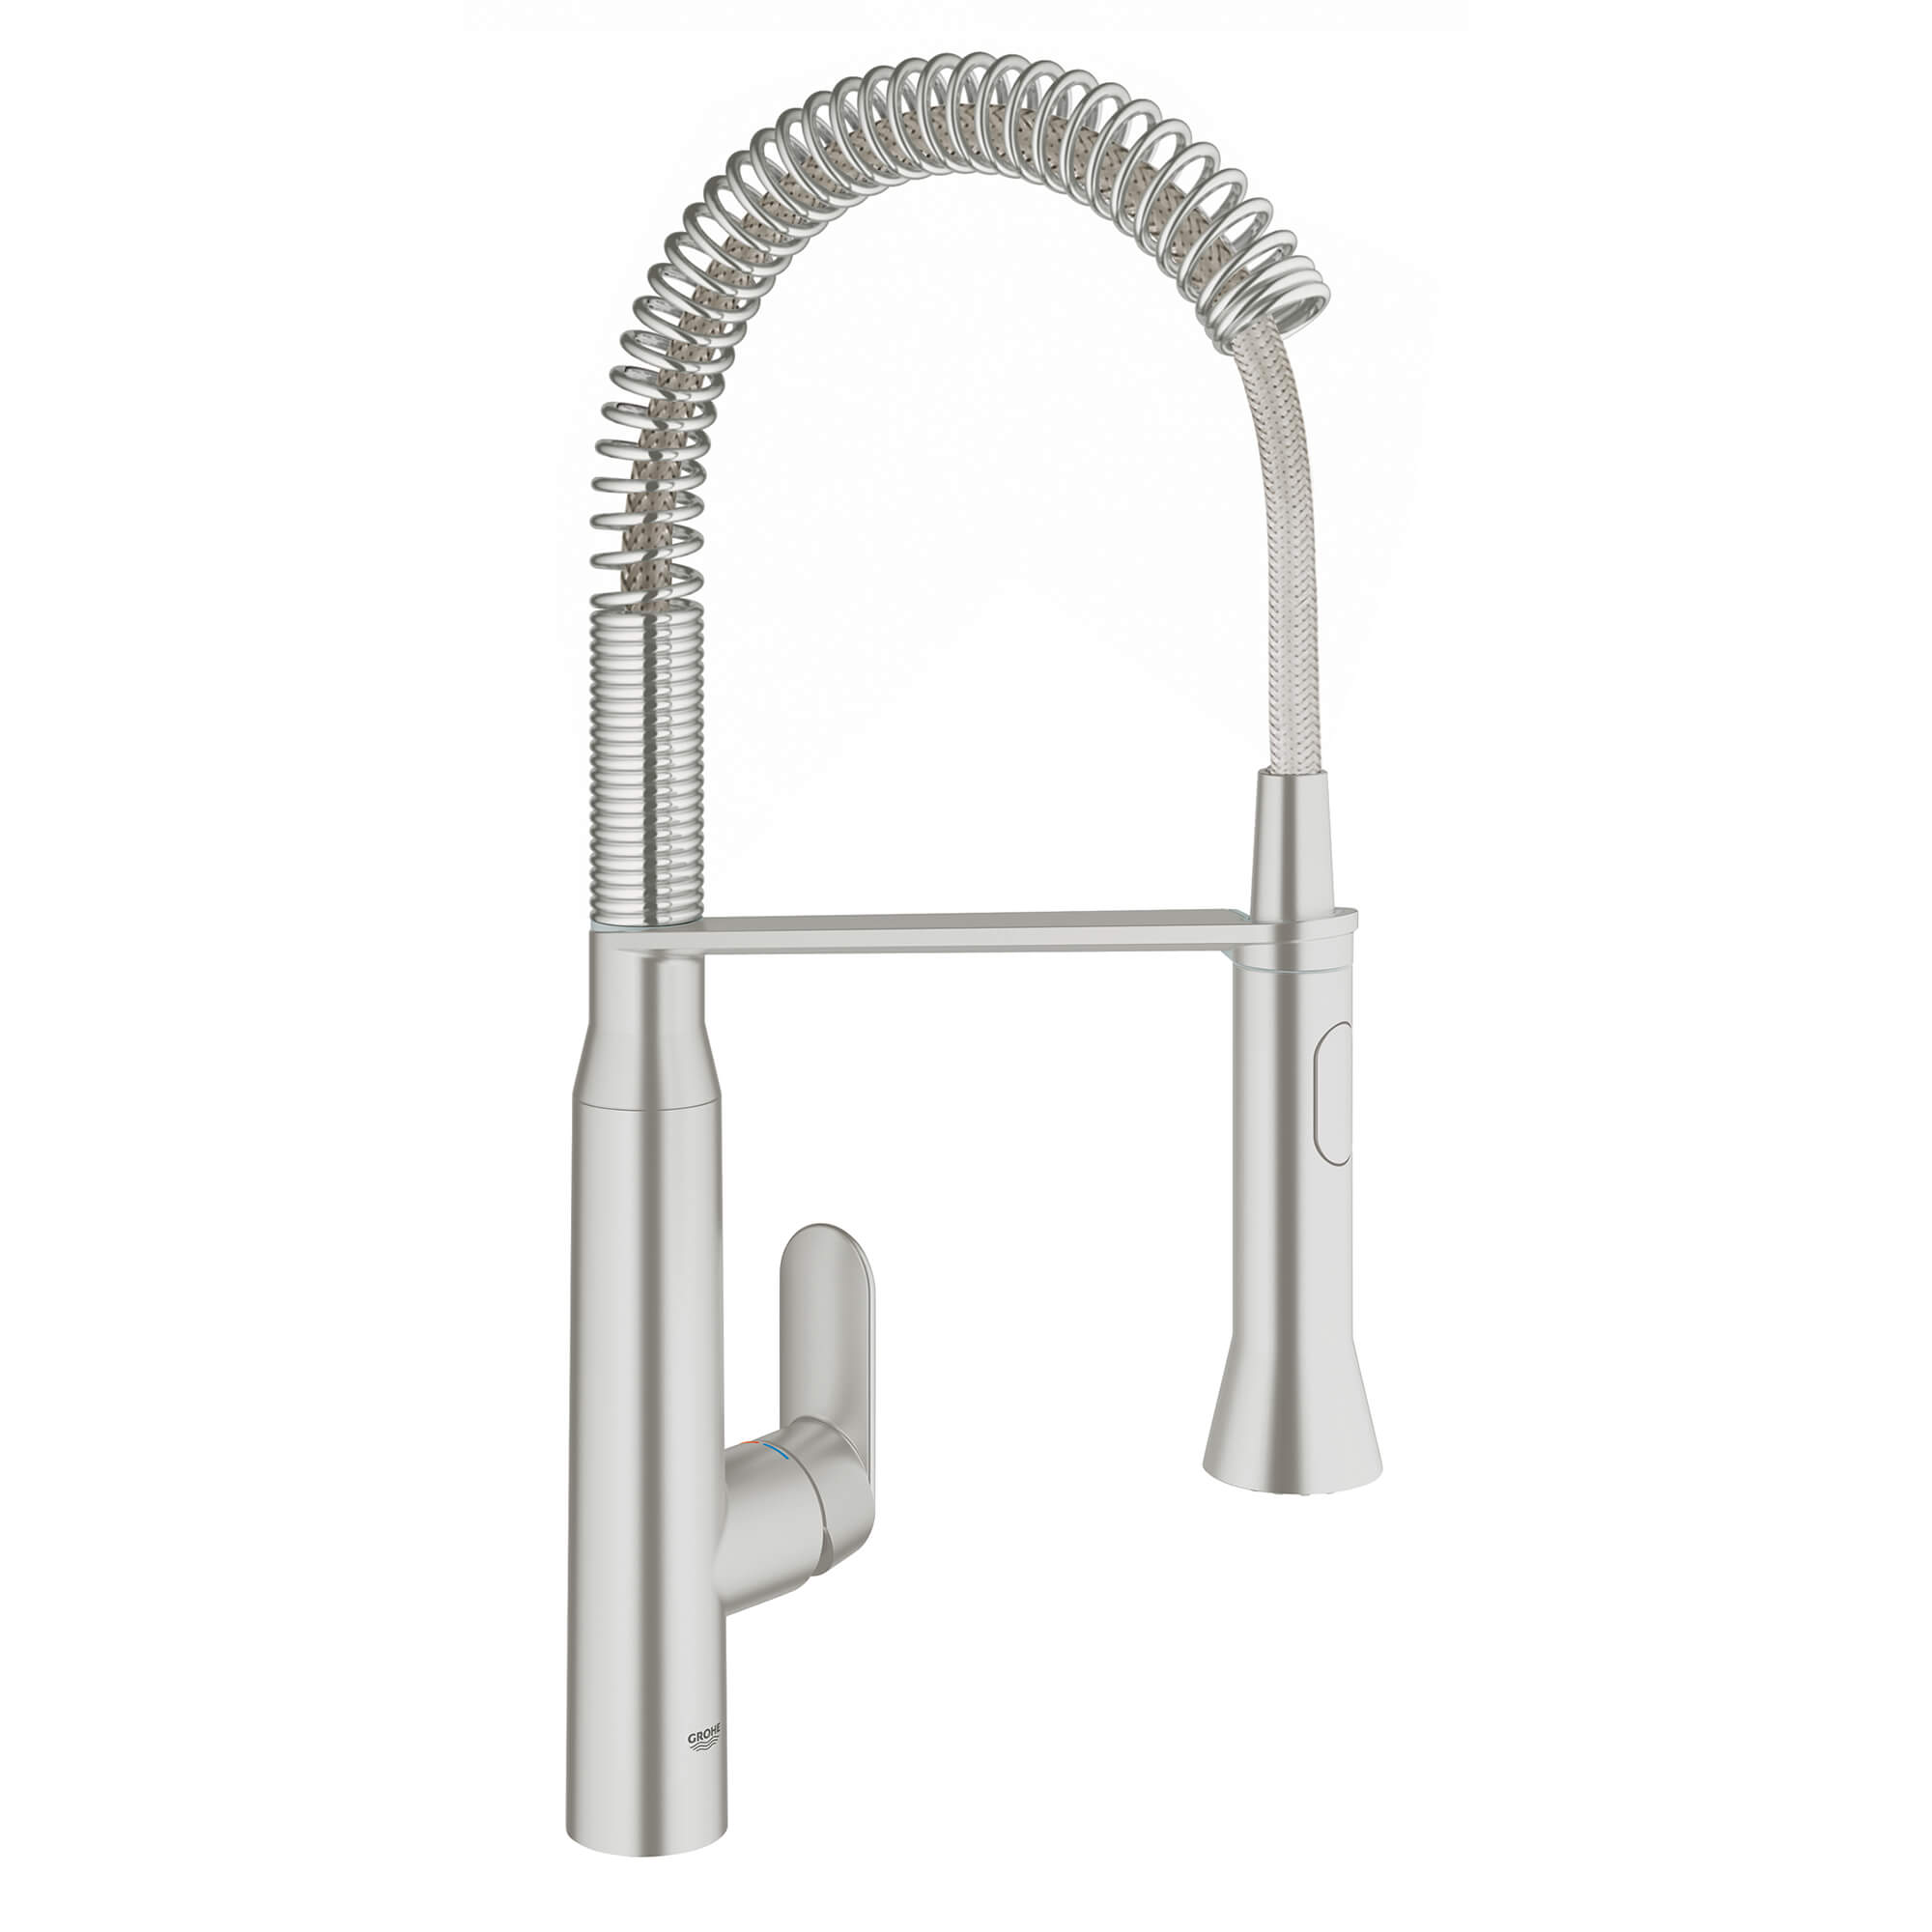 Single Handle Semi Pro Dual Spray Kitchen Faucet 175 GPM with Foot Control GROHE SUPERSTEEL